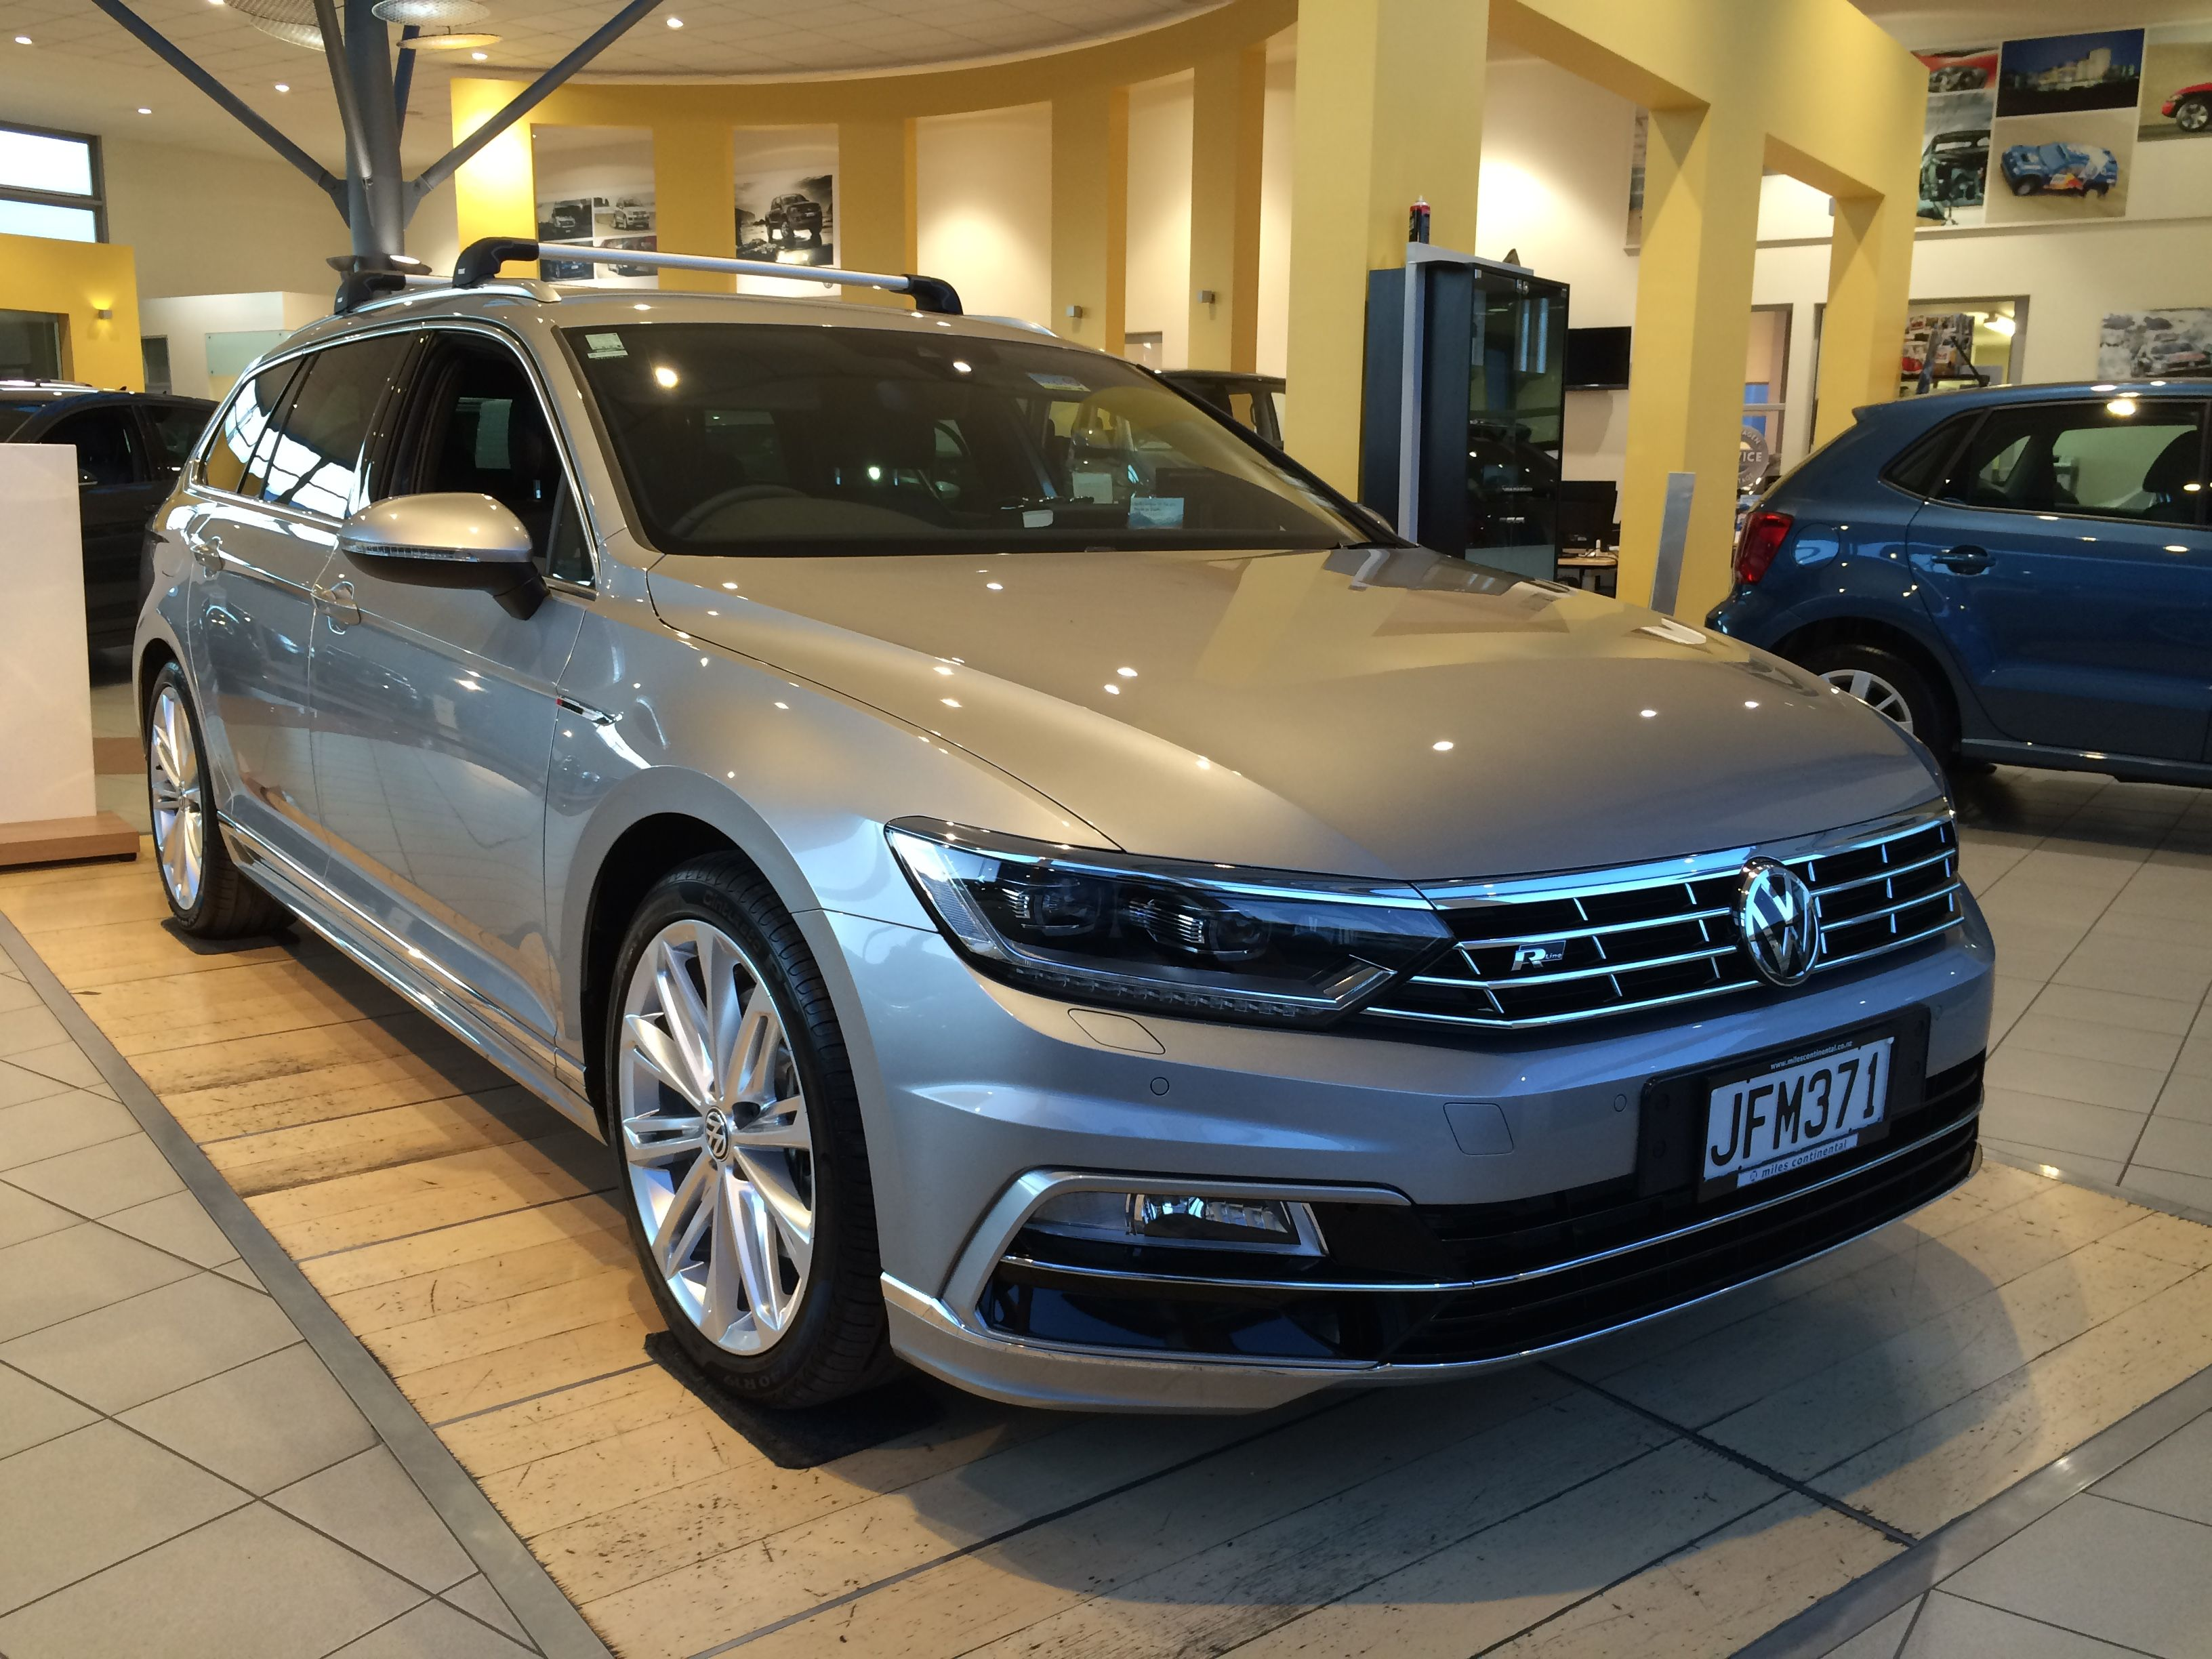 The new volkswagen passat is available in new zealand now this executive sedan and wagon exudes luxury and driving pleasure